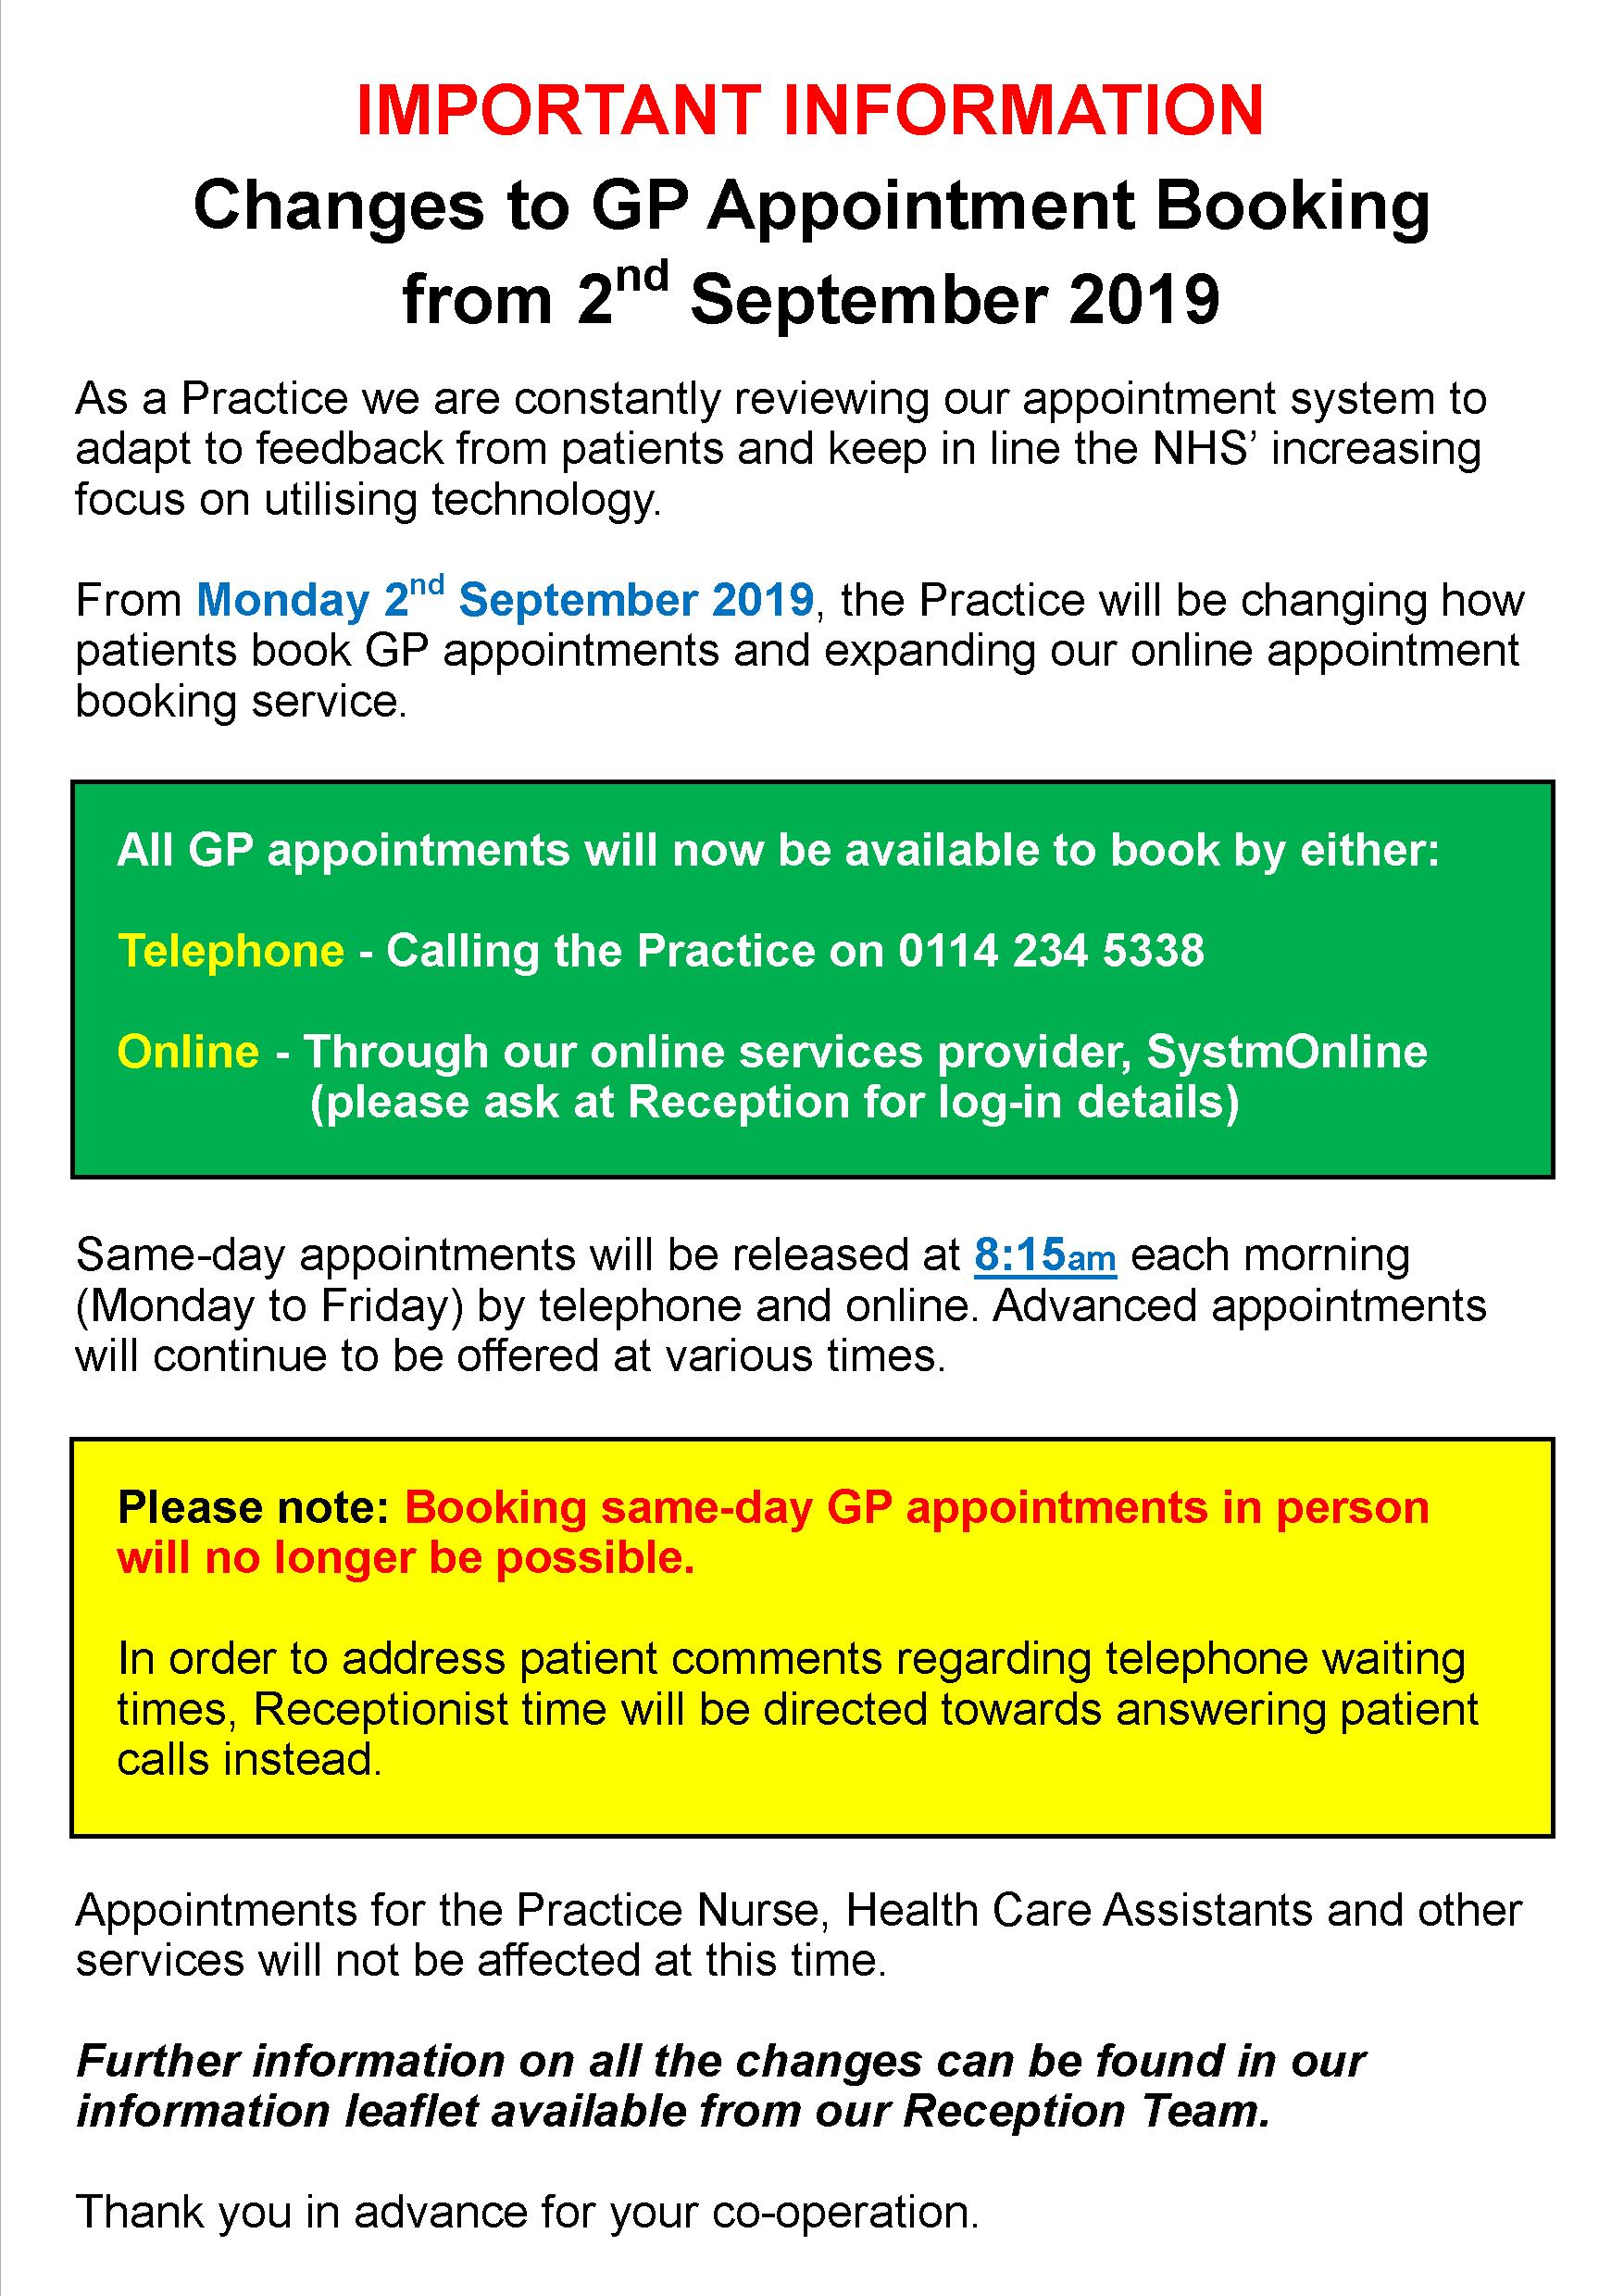 Appointment Changes Poster 2019